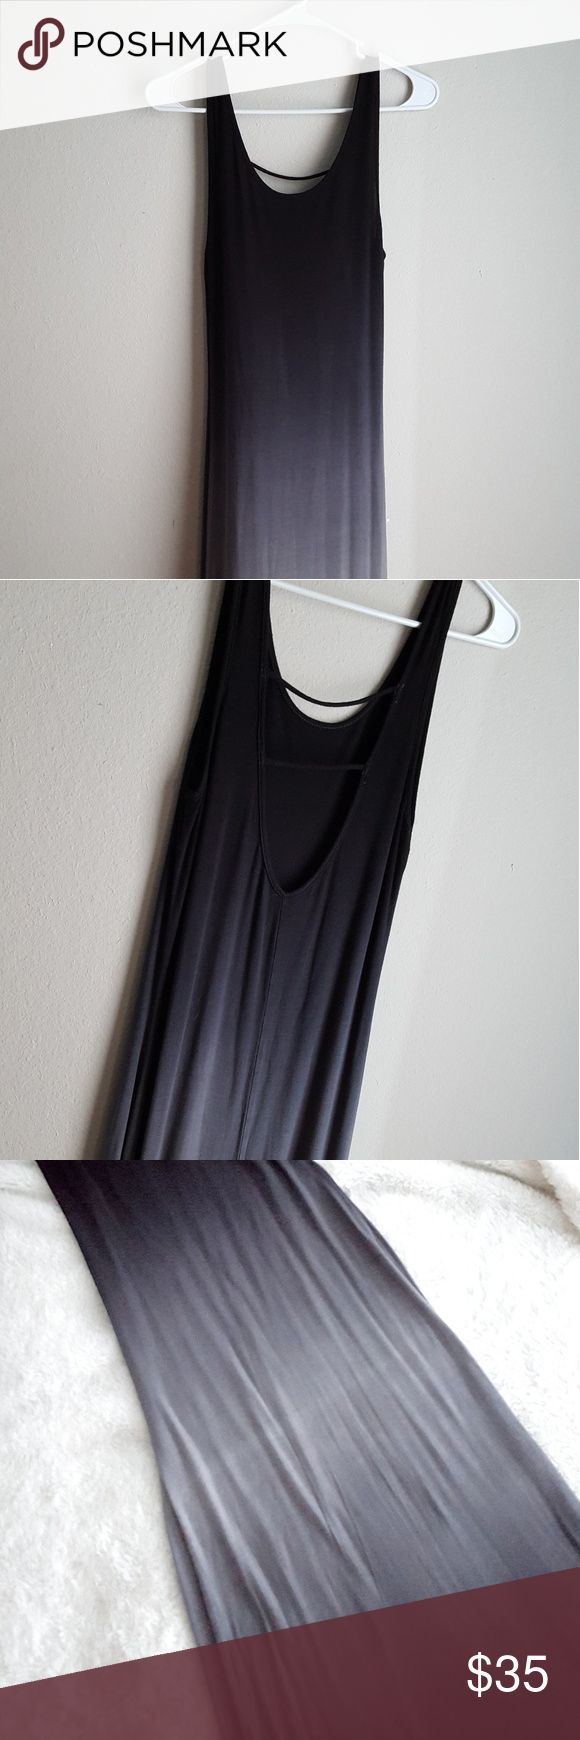 Ombre Scoopneck Maxi Sundress Black Gray Gorgeous, never worn, ombre maxi sundress.  *New without tags. *5ft from the top of the straps to the bottom of the dress. *It is a beautiful ombre that fades from black to gray in the midline and back to black at the bottom. *Great condition. *96% Raylon, 4% Spandex.  *Labeled small but will fit a small or medium; stretchy flowy material.  I didn't want to let go of this piece but it has been in the back of my closet since I purchased it so I figured…